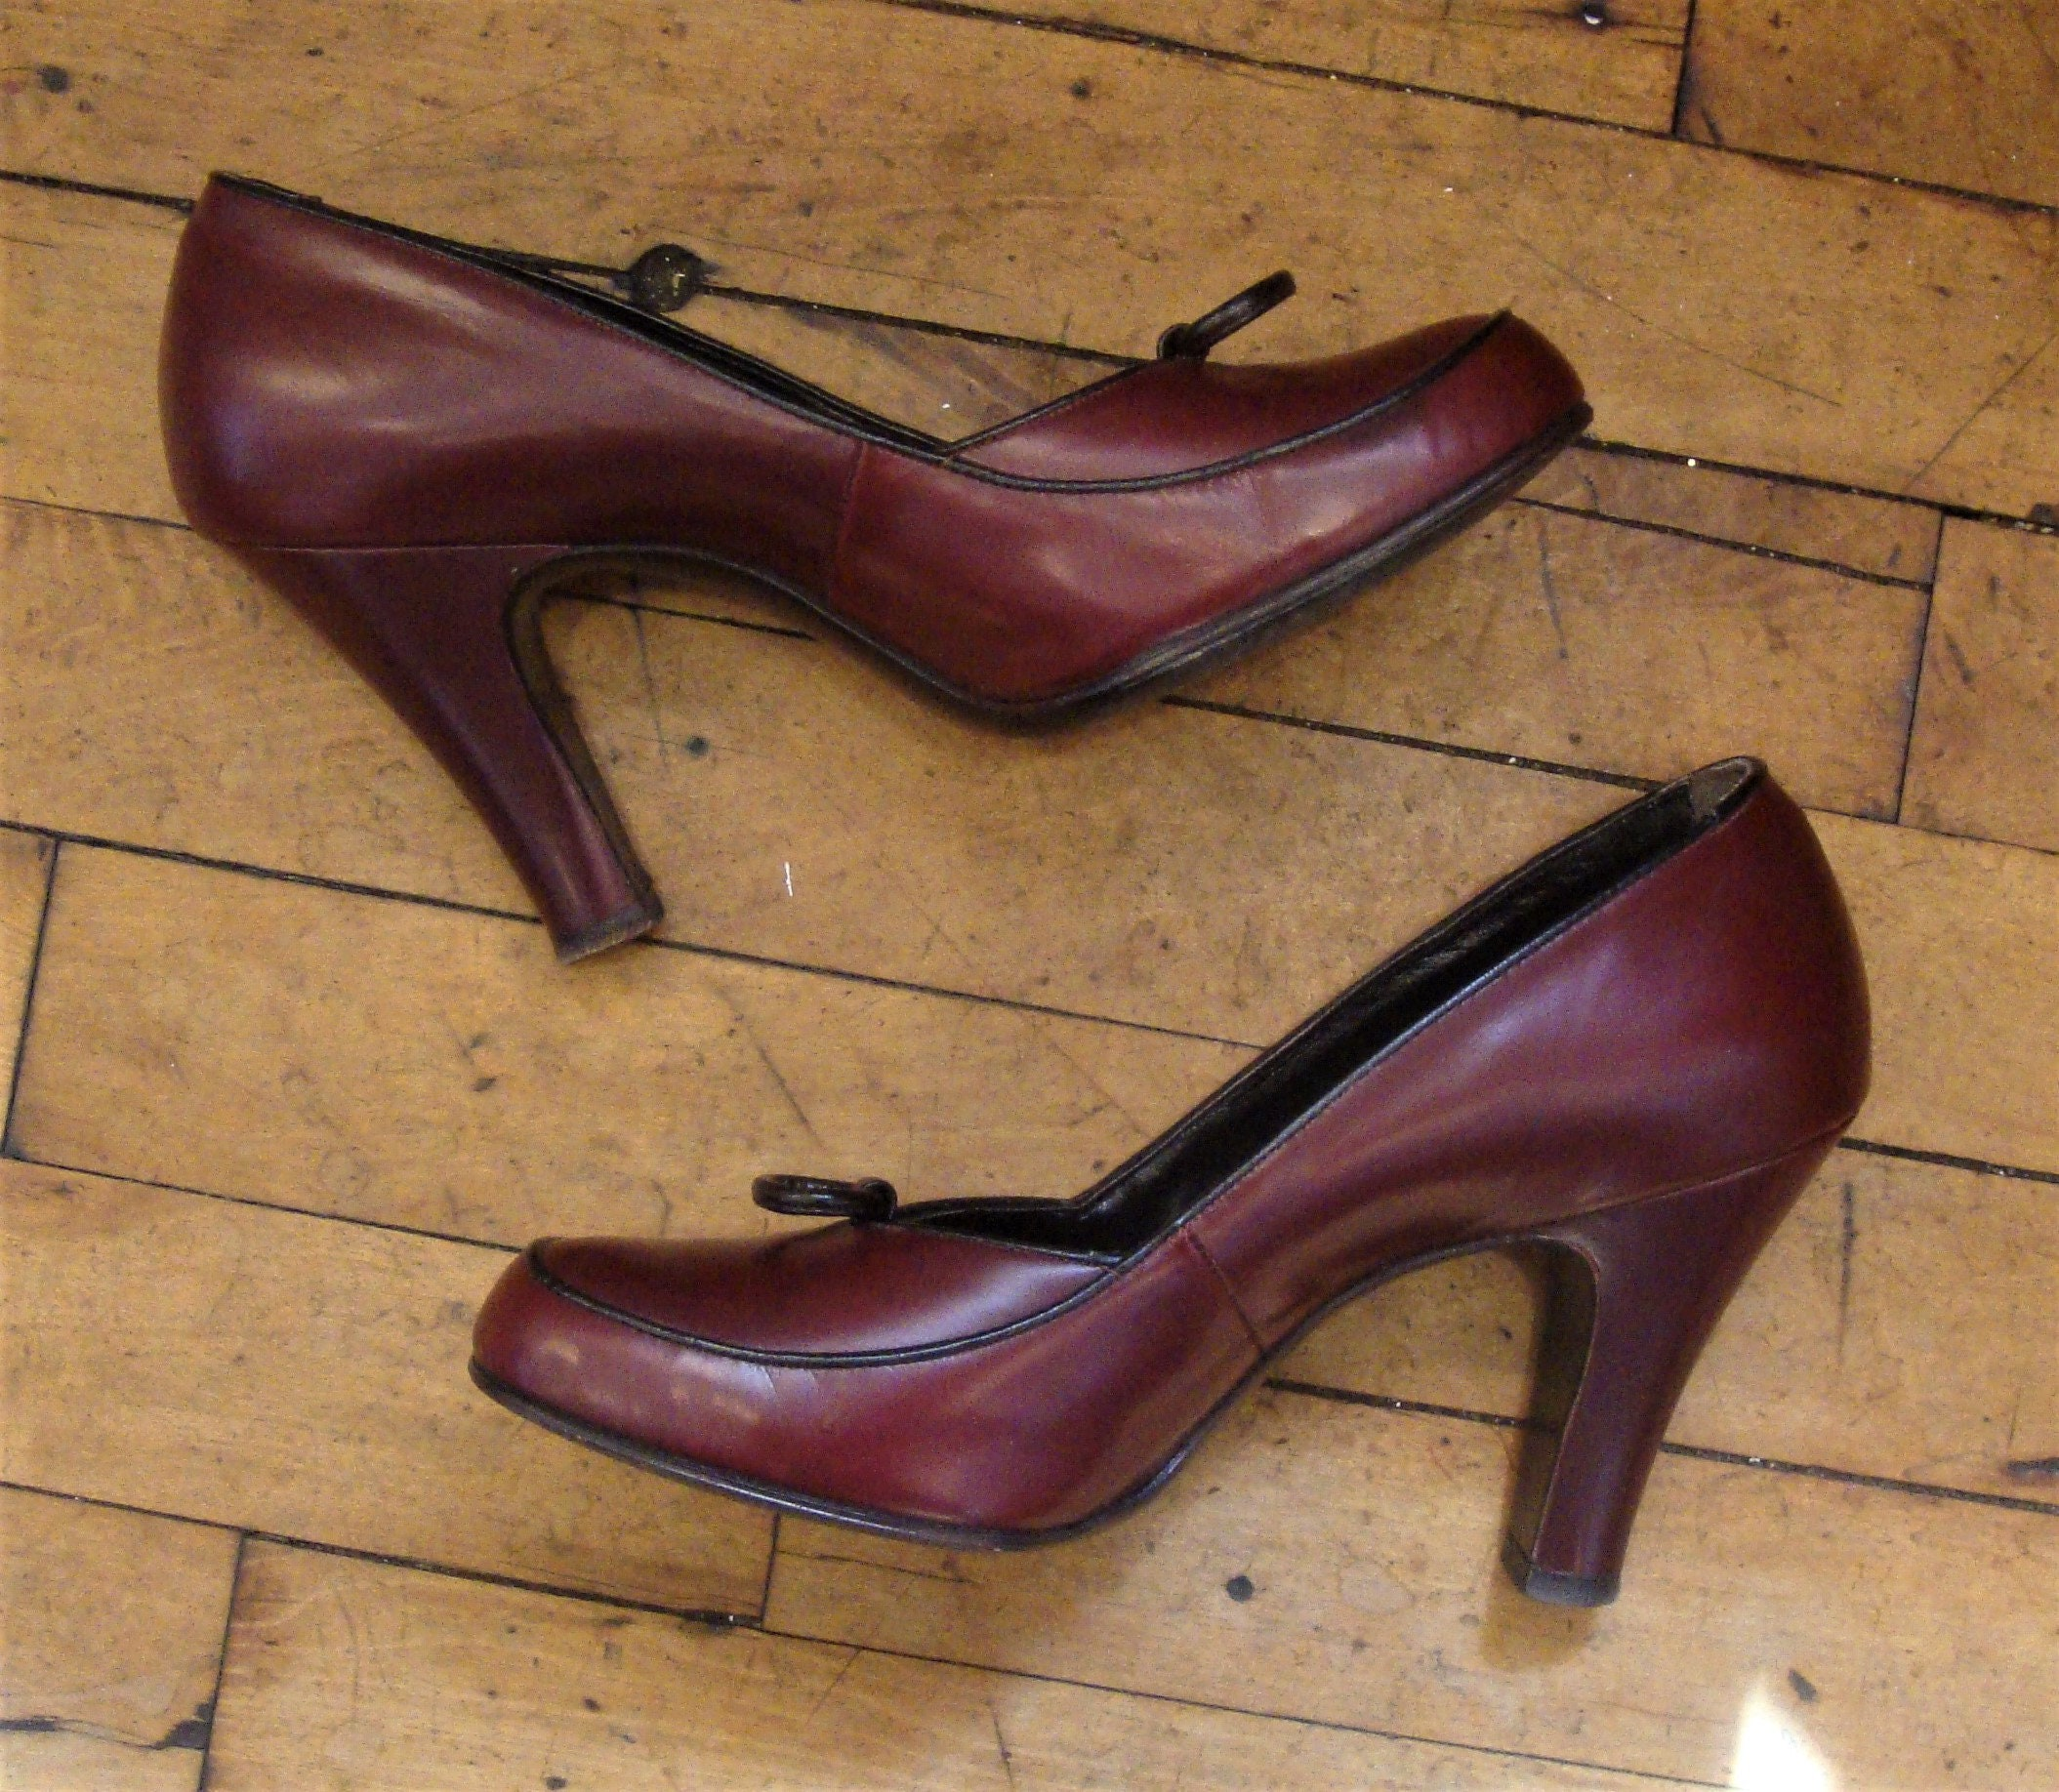 1940s Jewelry Styles and History Vintage 1940s 1950s Wine Maroon Baby Doll Pin Up High Heel Shoes Pumps Size 7N $0.00 AT vintagedancer.com